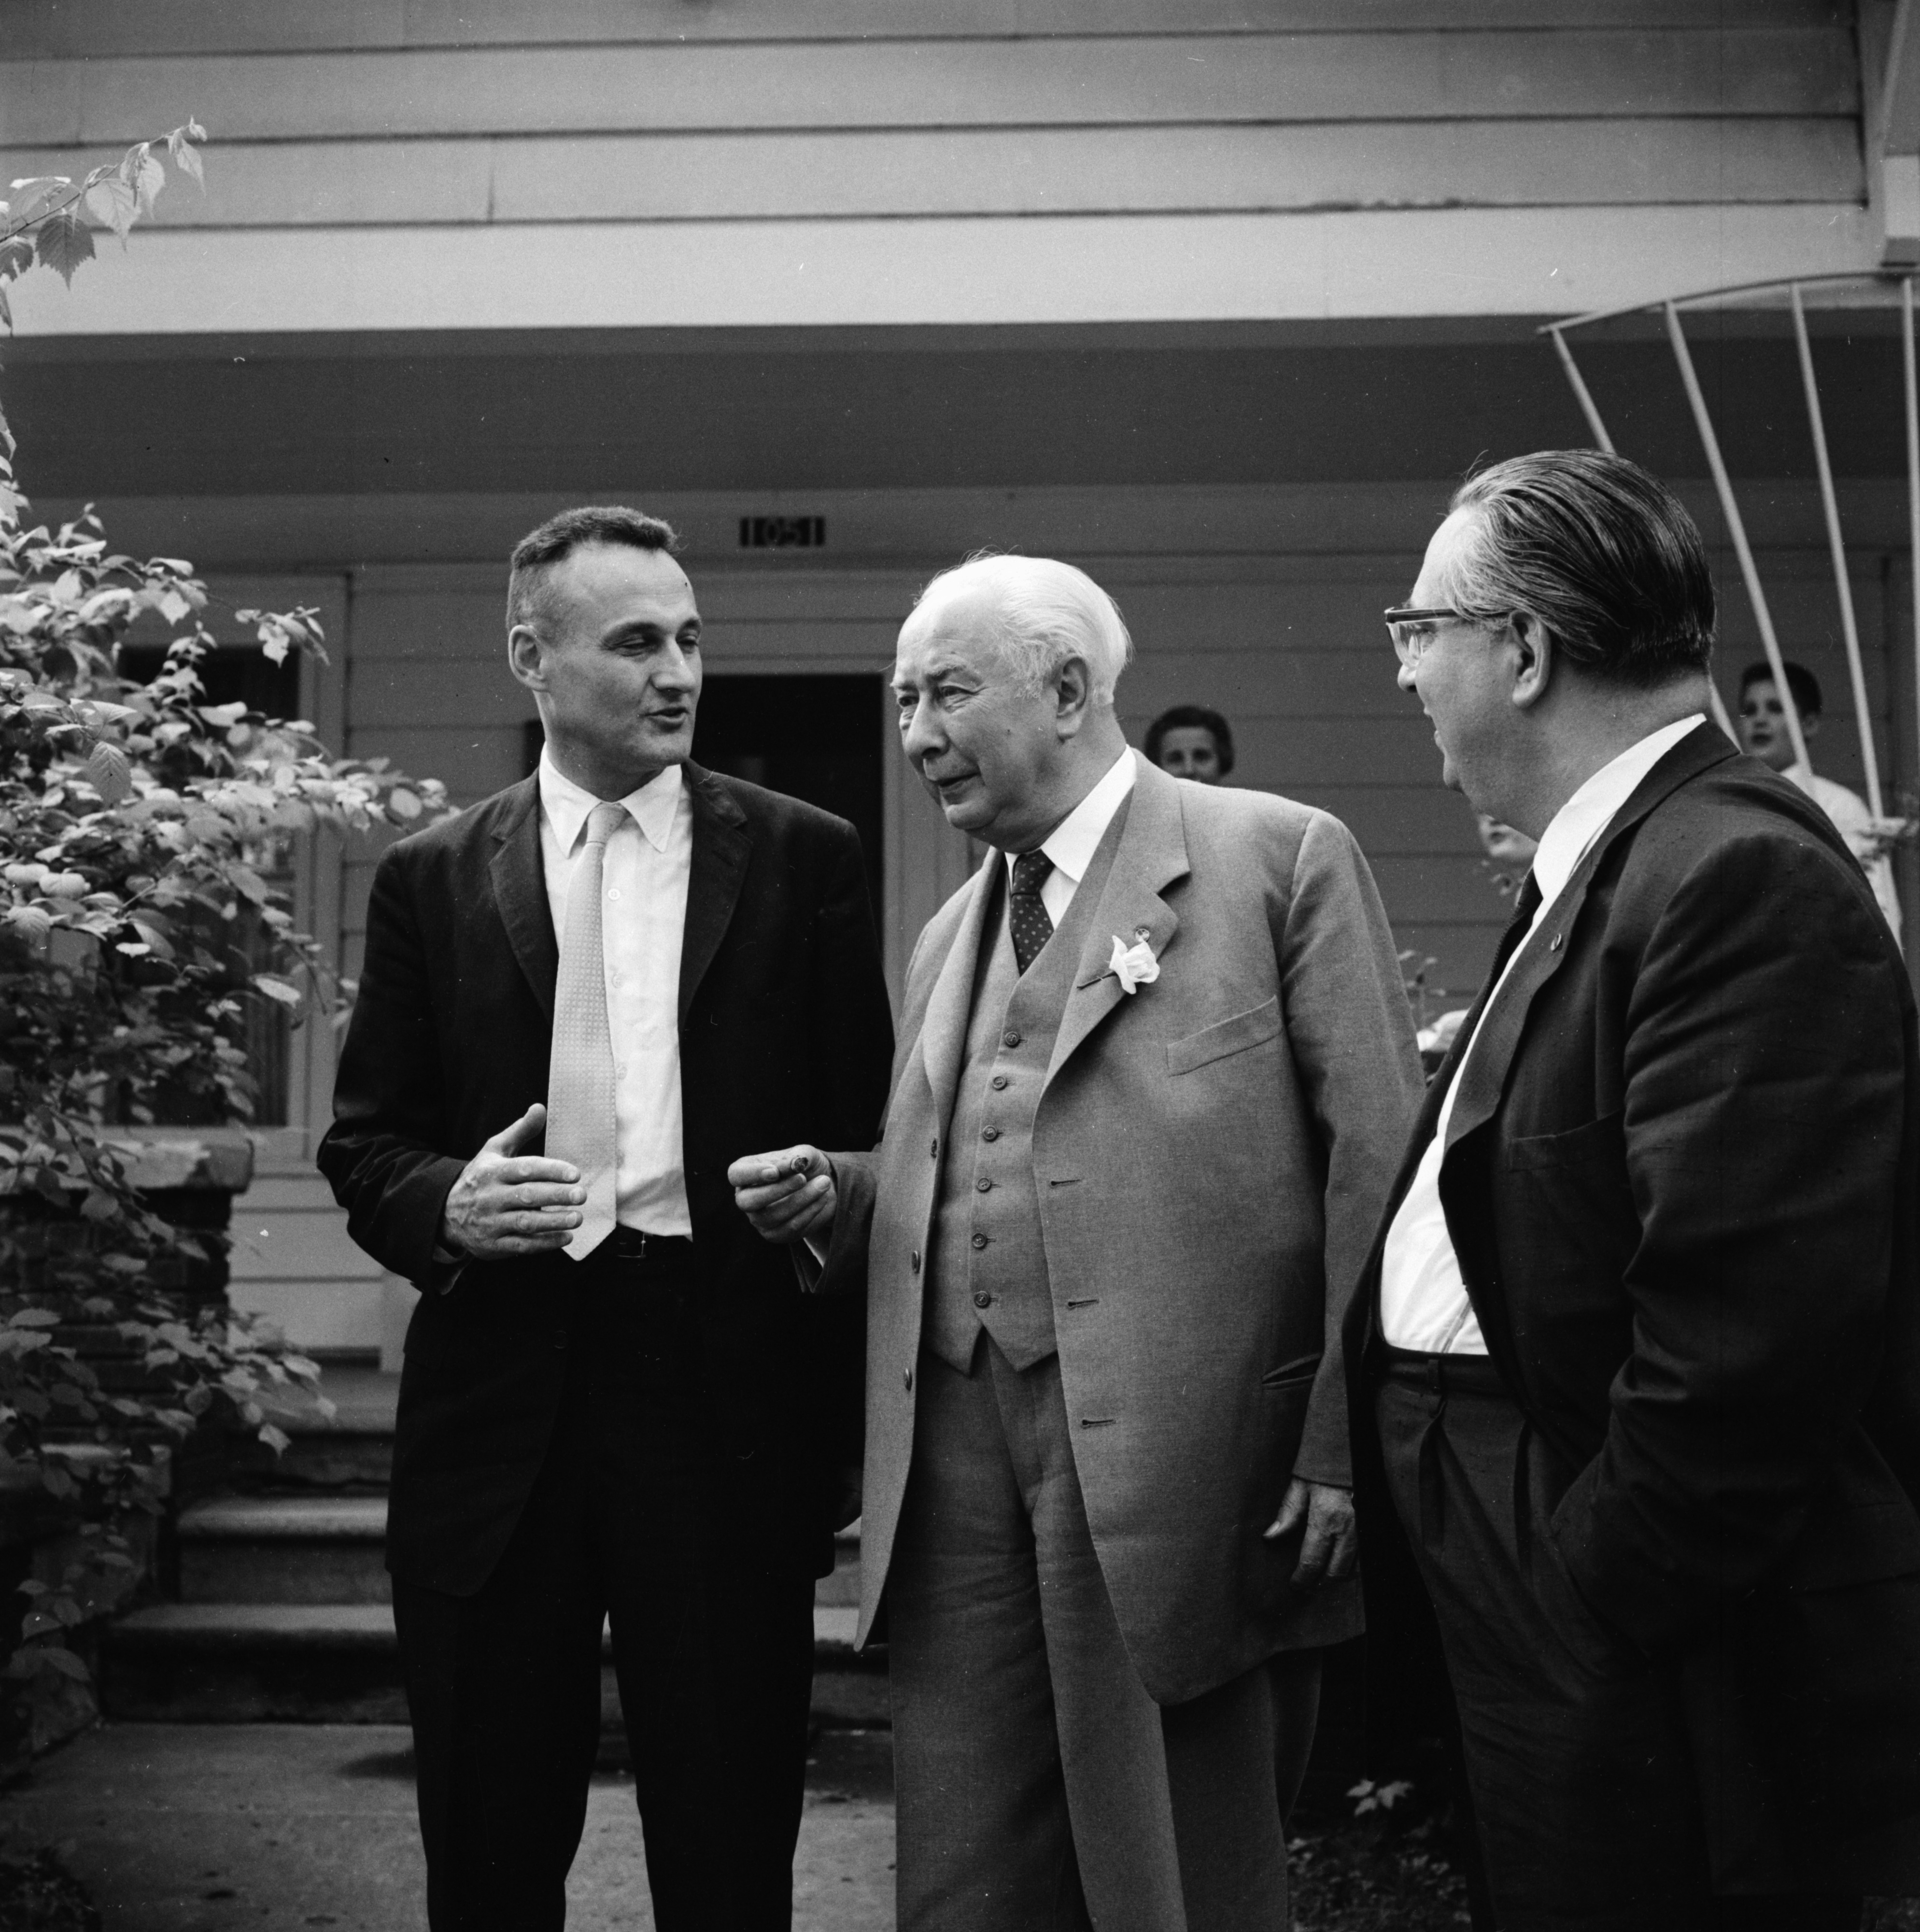 Theodor Huess, president of the West German Republic, visits with Prof. Wolfgang F. Stolper, June 1958 image